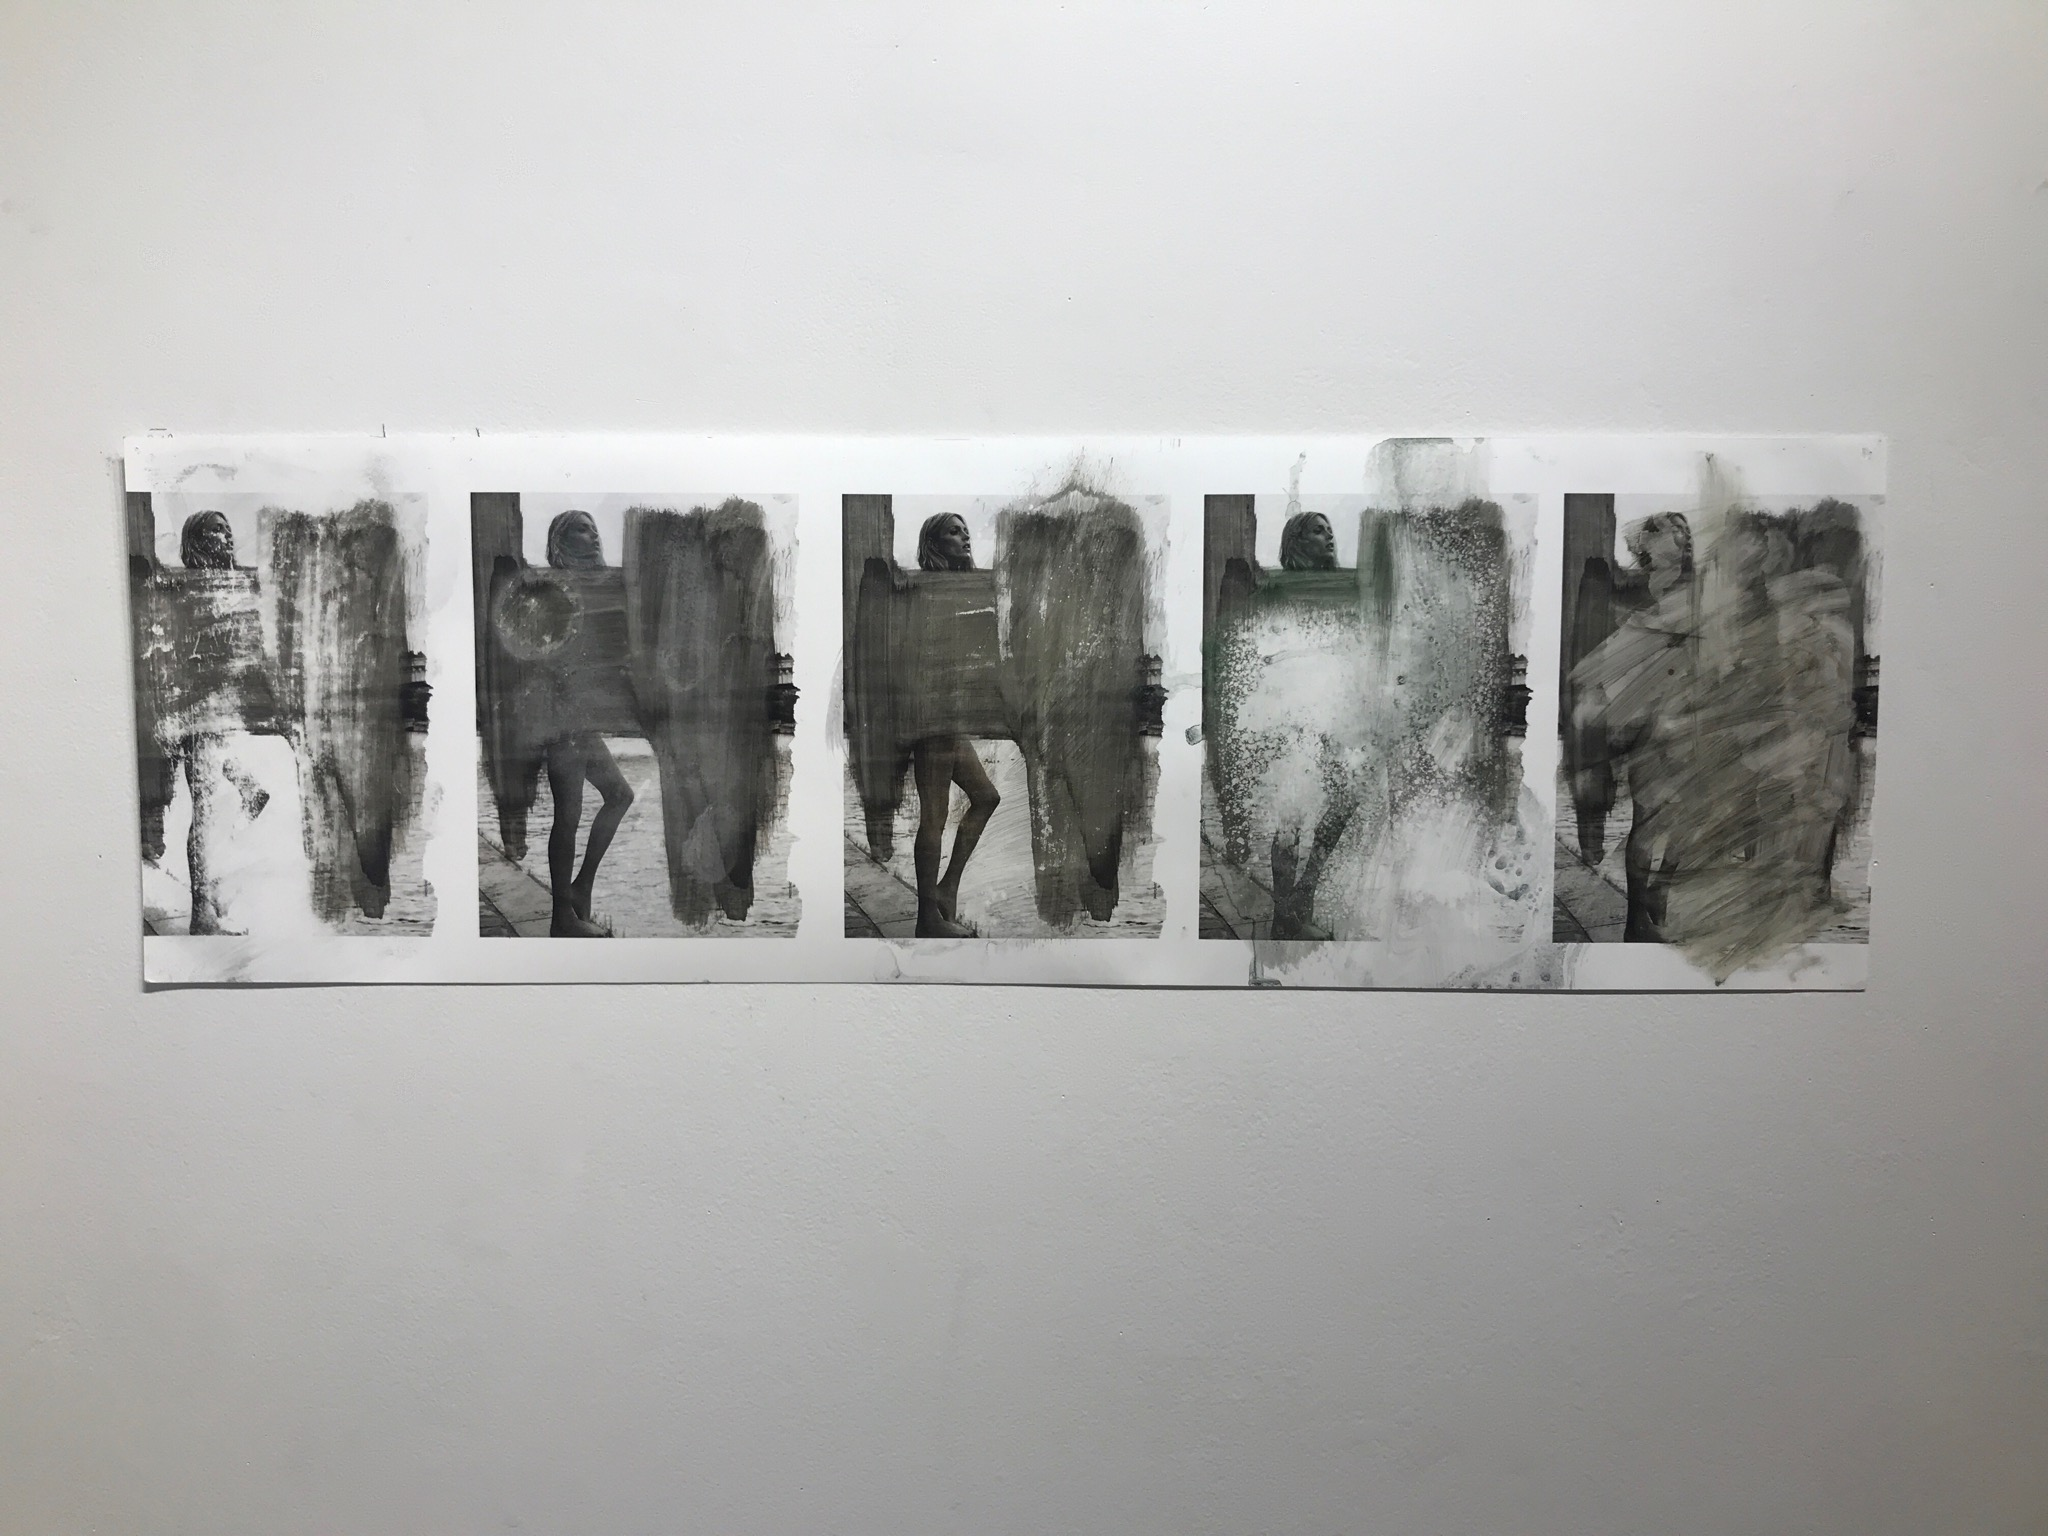 Process   2017  11 6/16 x 36 in.  Citra solv on magazine, bathroom cleaner, oven cleaner, nail polish remover, window cleaner, and bleach on photo paper